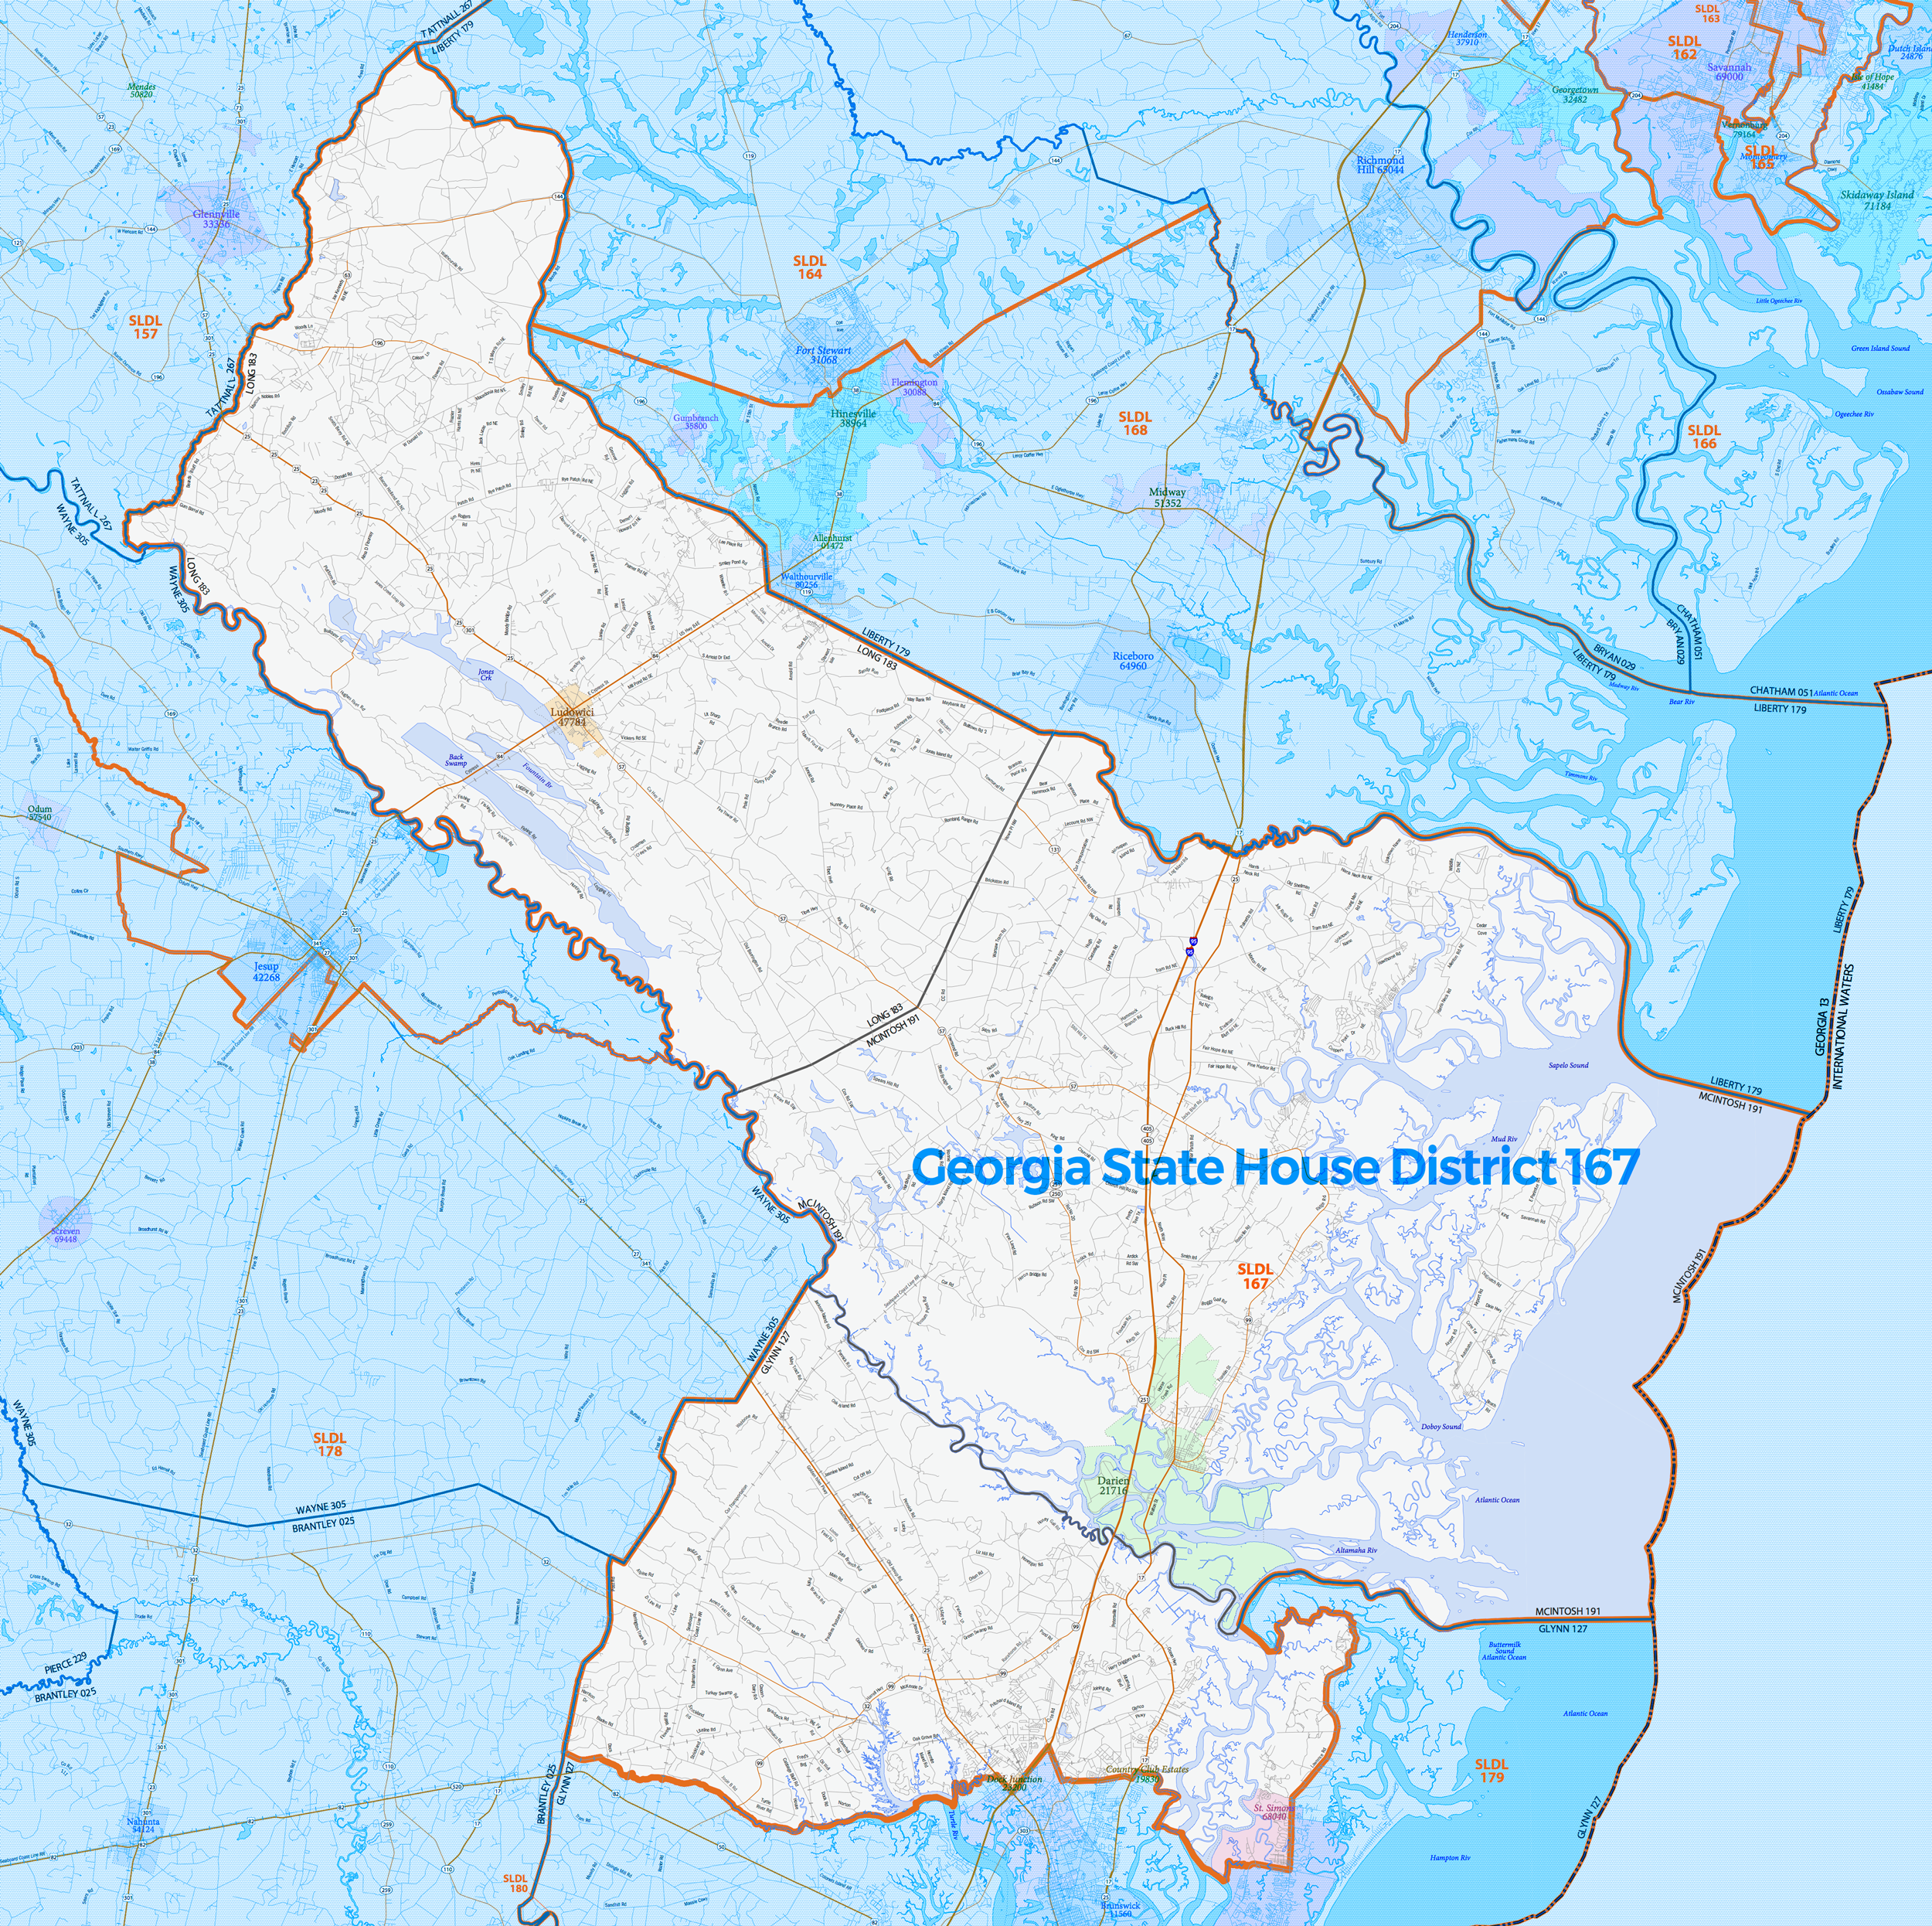 District and Precinct Maps – The party of the people on georgia state legislature, georgia state senate map, georgia legislature district map, georgia house district 127 map, georgia state senators by county, georgia state senate seal, georgia legislative map, flooding in houston flood maps, georgia gop state representative district map, georgia state map cities and towns, georgia house district map 2014, georgia state capital map, california state assembly district maps, ga militia district maps, florida state district maps, 2014 ohio congressional district maps, georgia state county city map, georgia state map and major cities, georgia federal districts, georgia state map 1800,